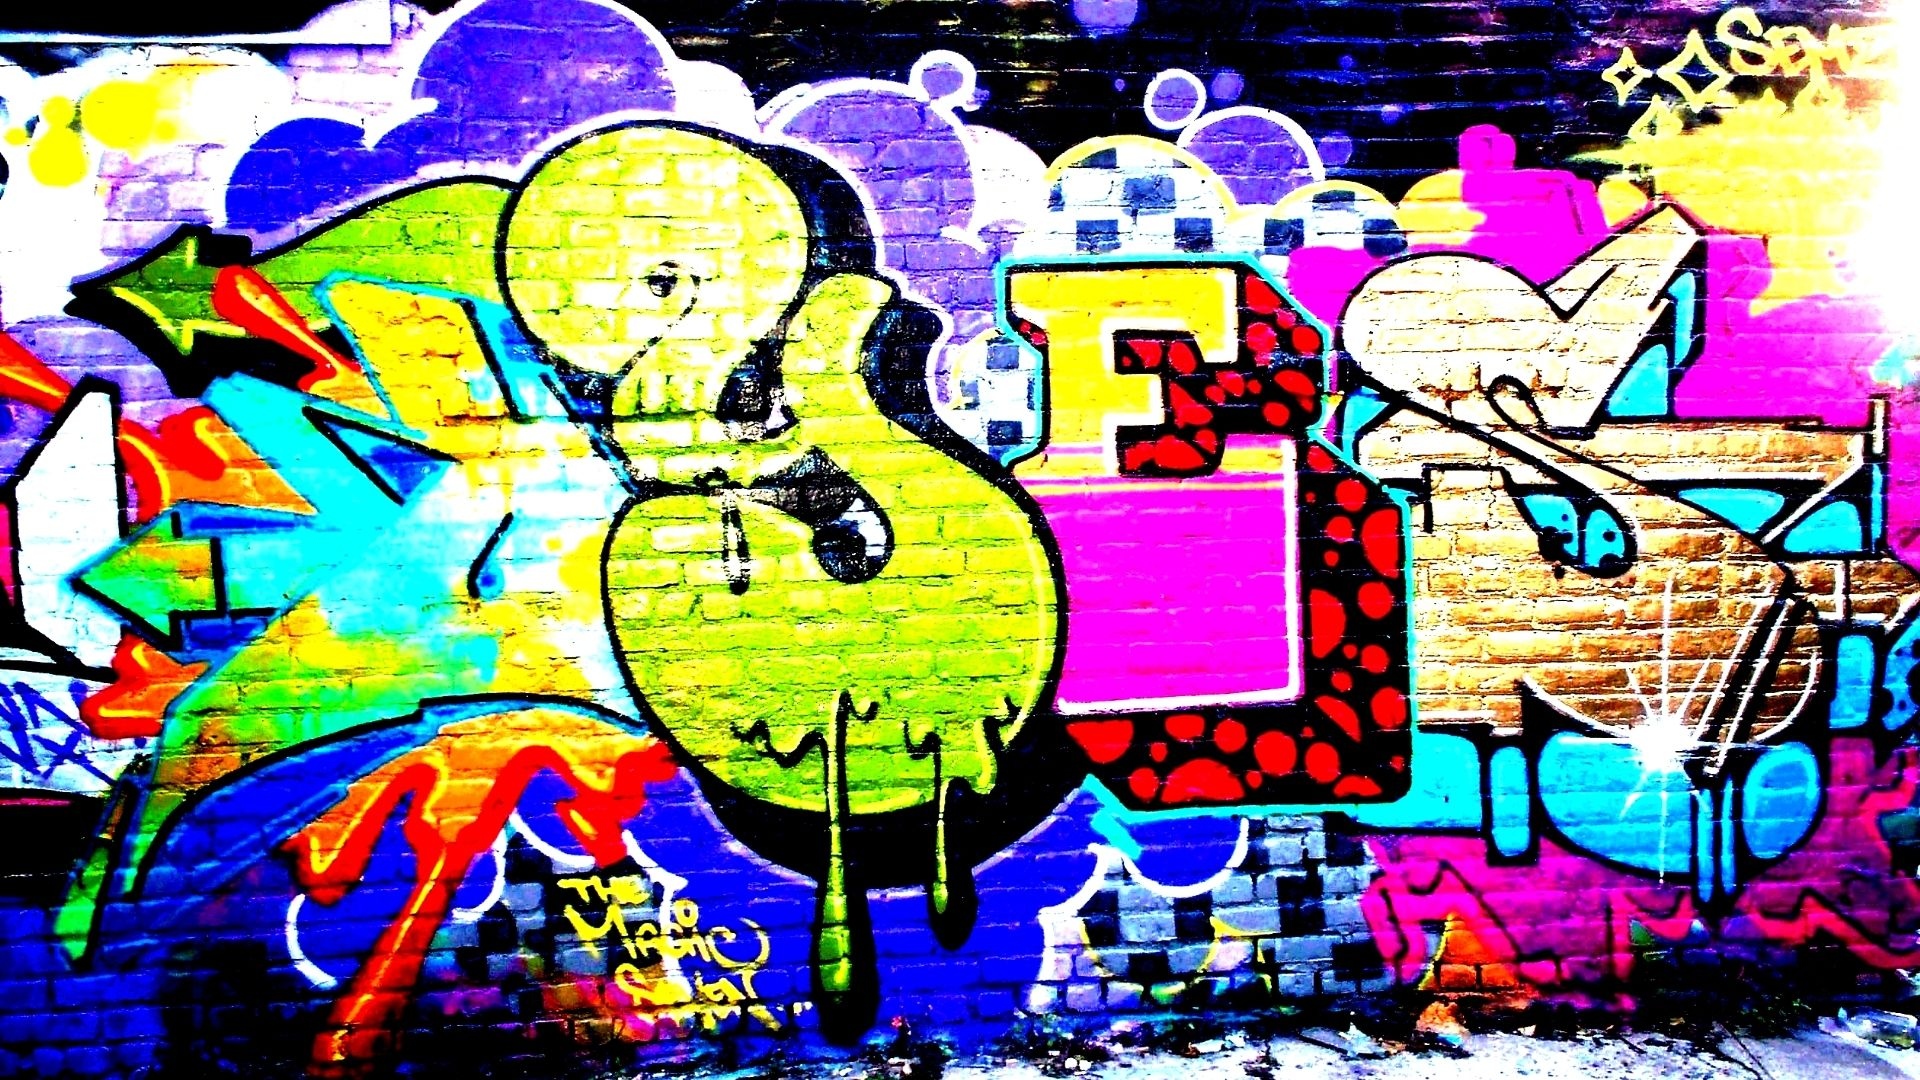 Download free graffiti wallpaper images for laptop desktops hd download free graffiti wallpaper images for laptop desktops voltagebd Image collections